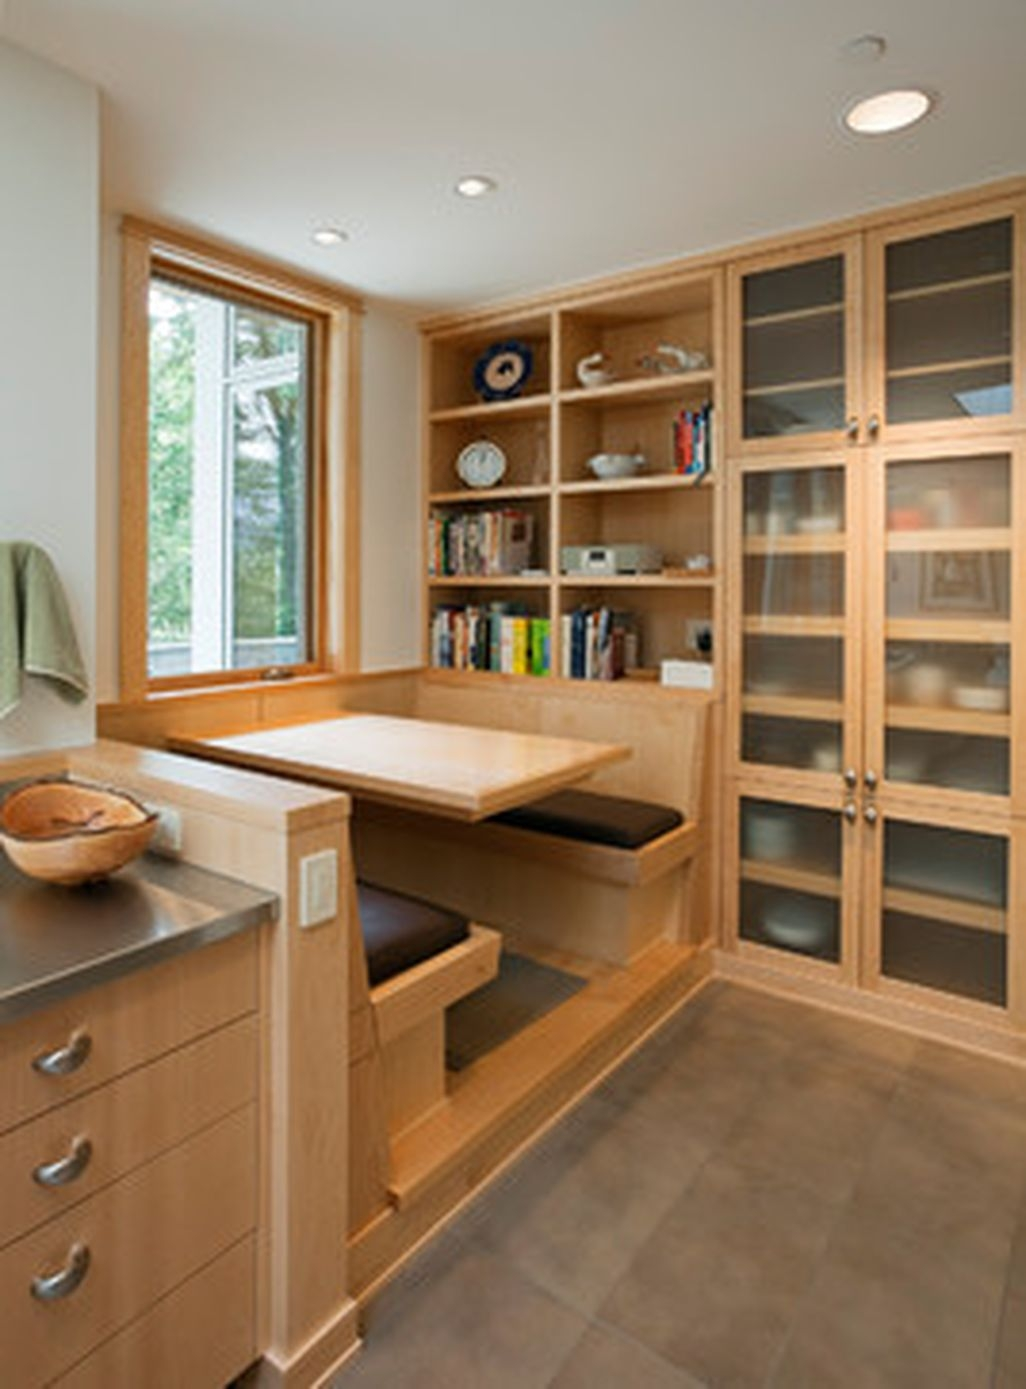 43 Extremely Creative Small Kitchen Design Ideas: Creative Small Rv Kitchen Design Ideas 17